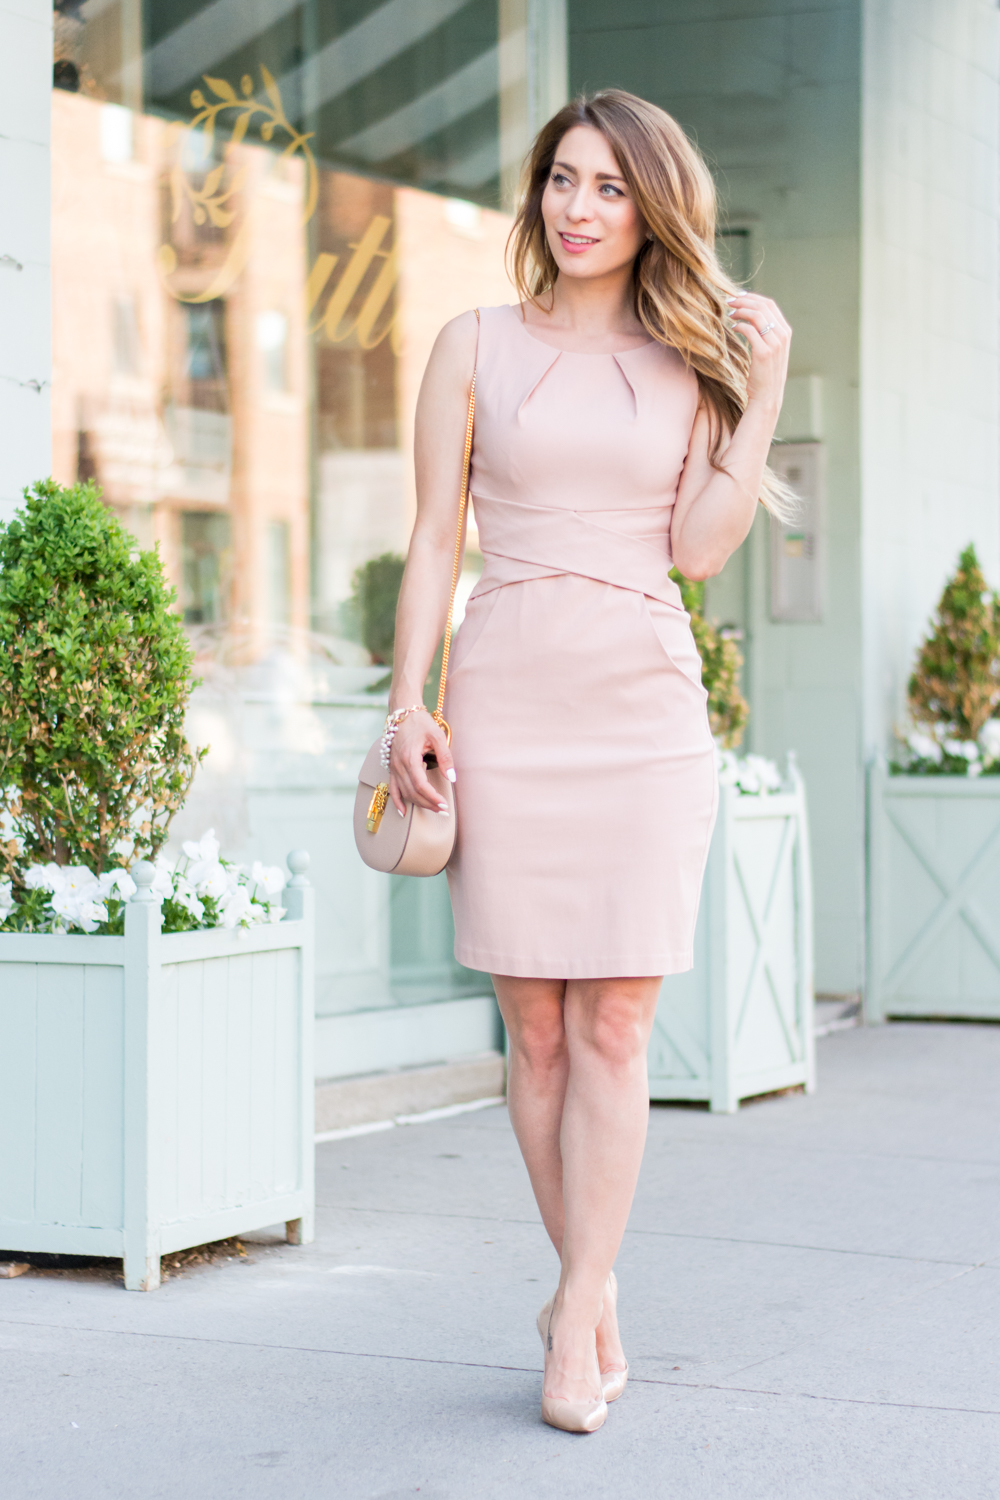 dress for a wedding dress for a wedding do you like the idea of a blush dress to wear to a wedding what do you feel most comfortable in for wedding attire